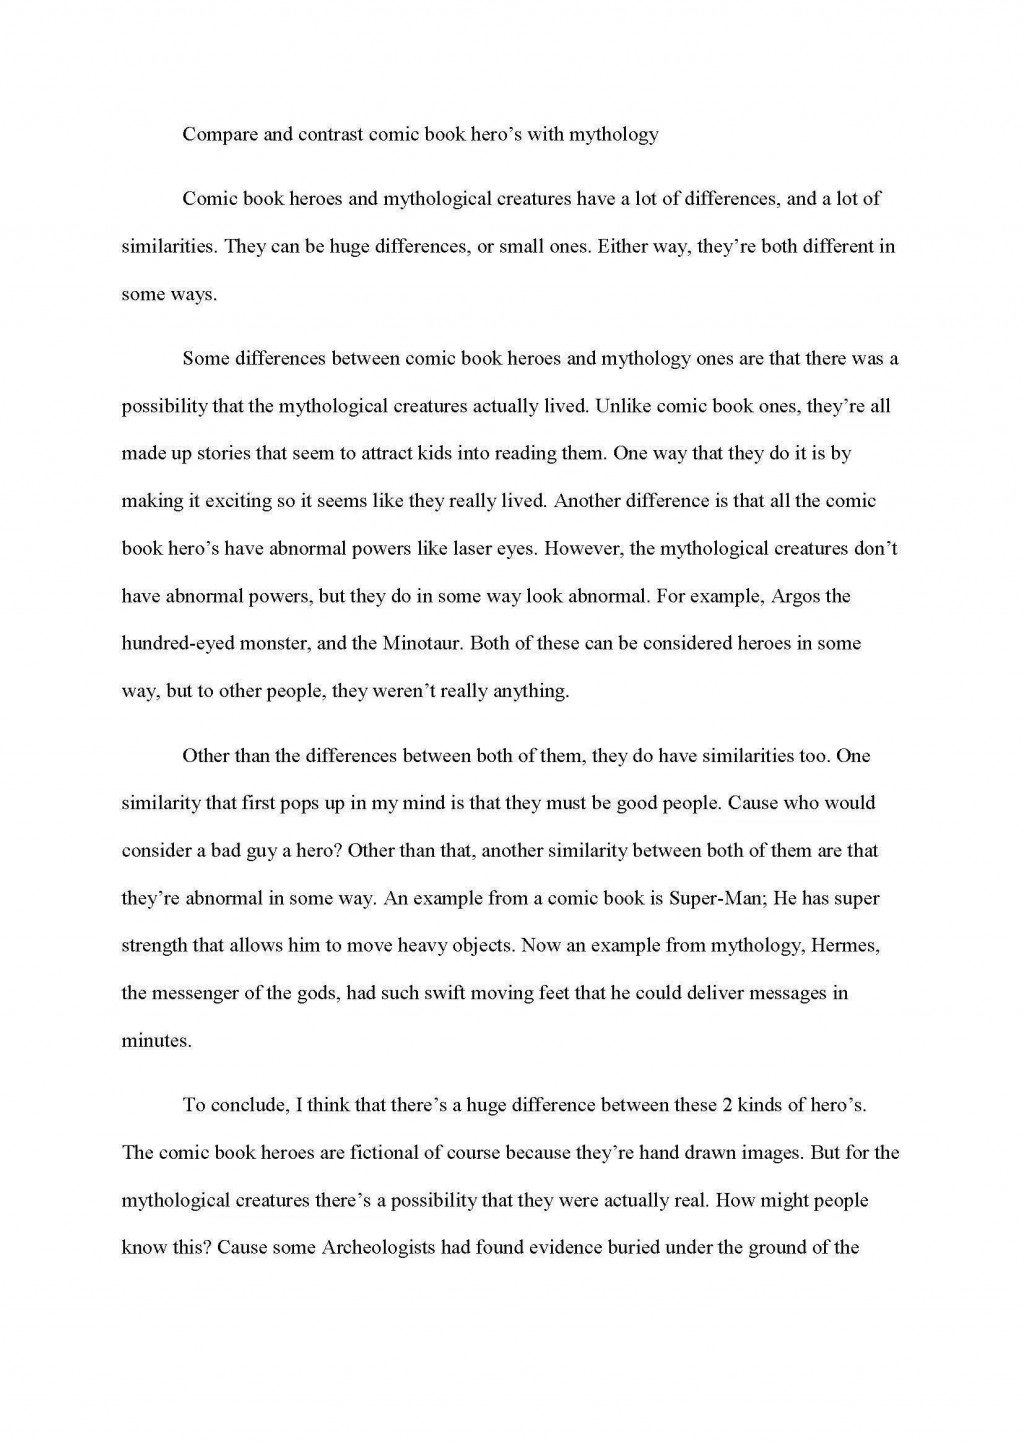 006 Excellent Compare And Contrast Essay Example College  For Topic Free ComparisonLarge